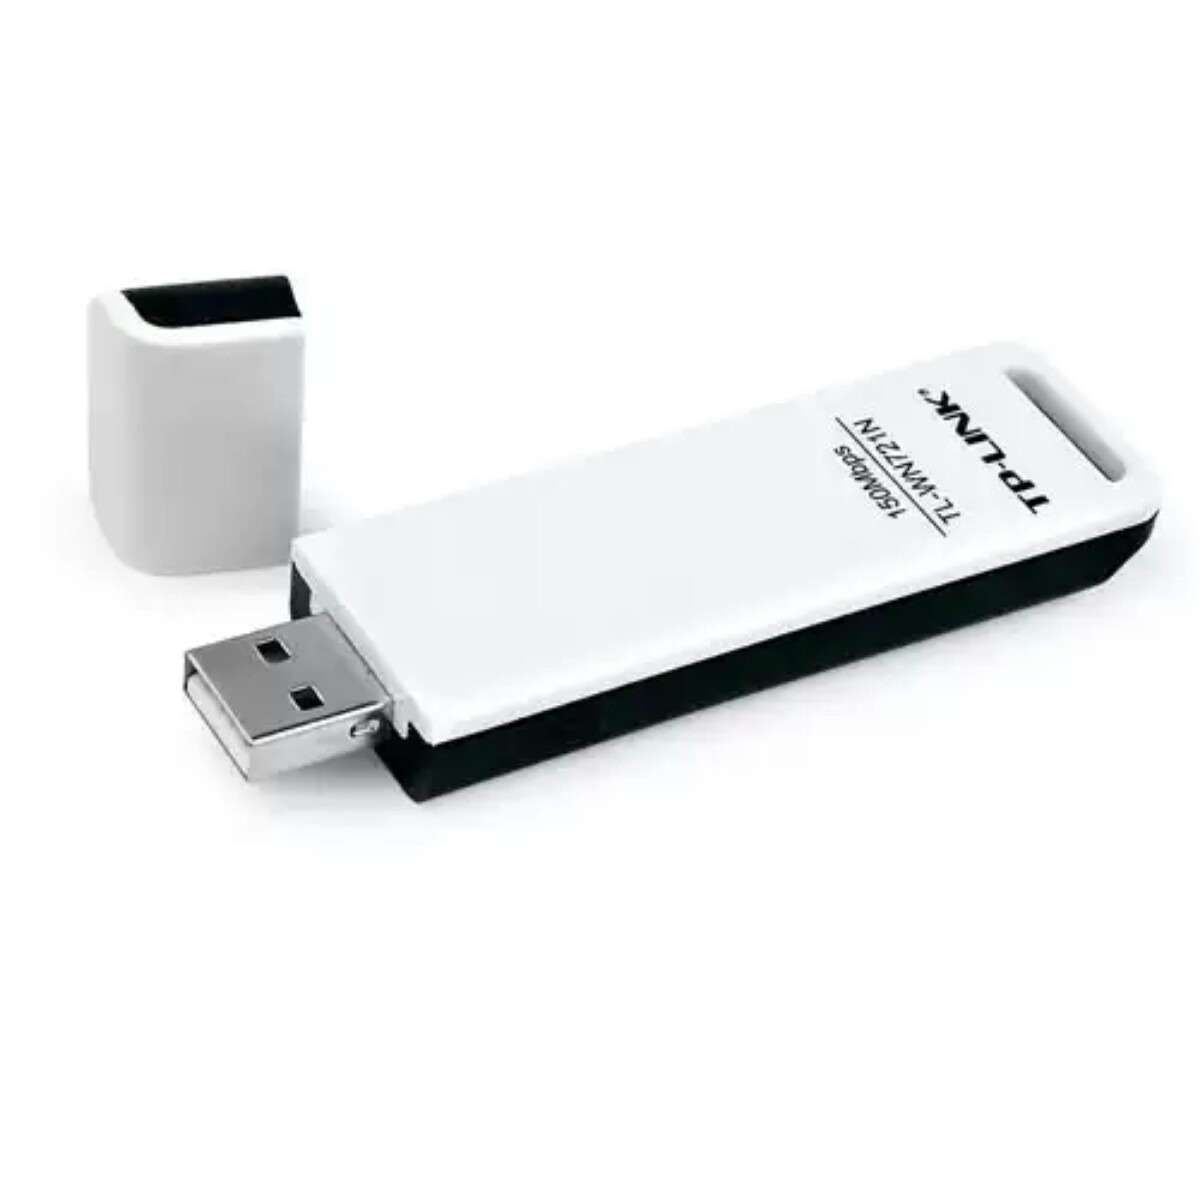 Adaptador USB Wireless N 150Mbps TL-WN721N